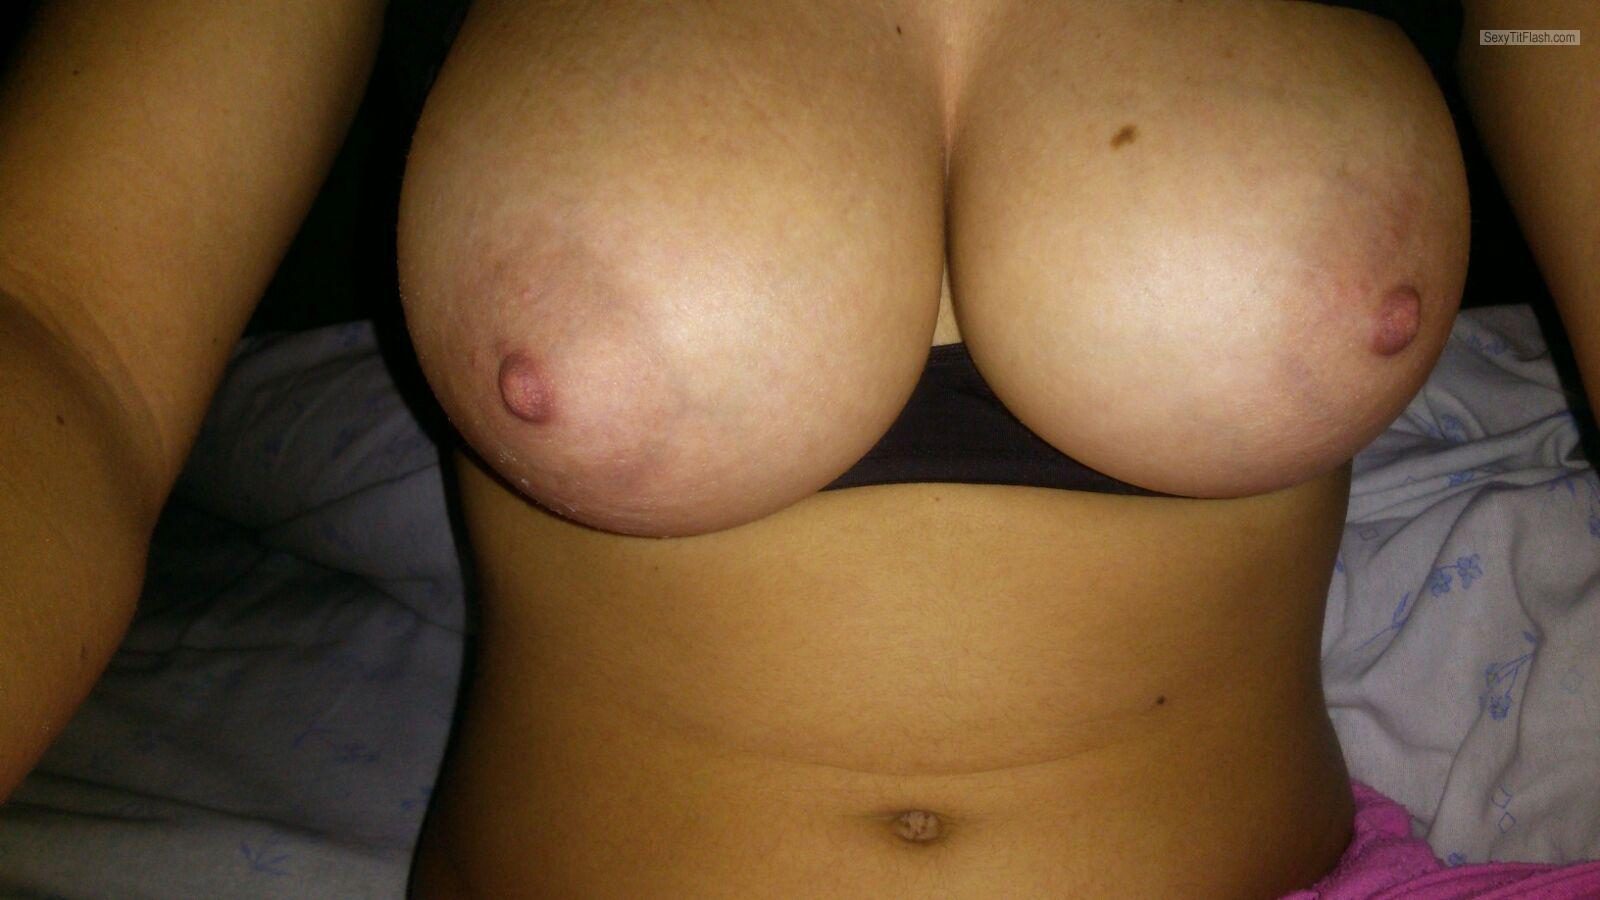 my big tits (selfie) - rosa95 from canada tit flash id 210660